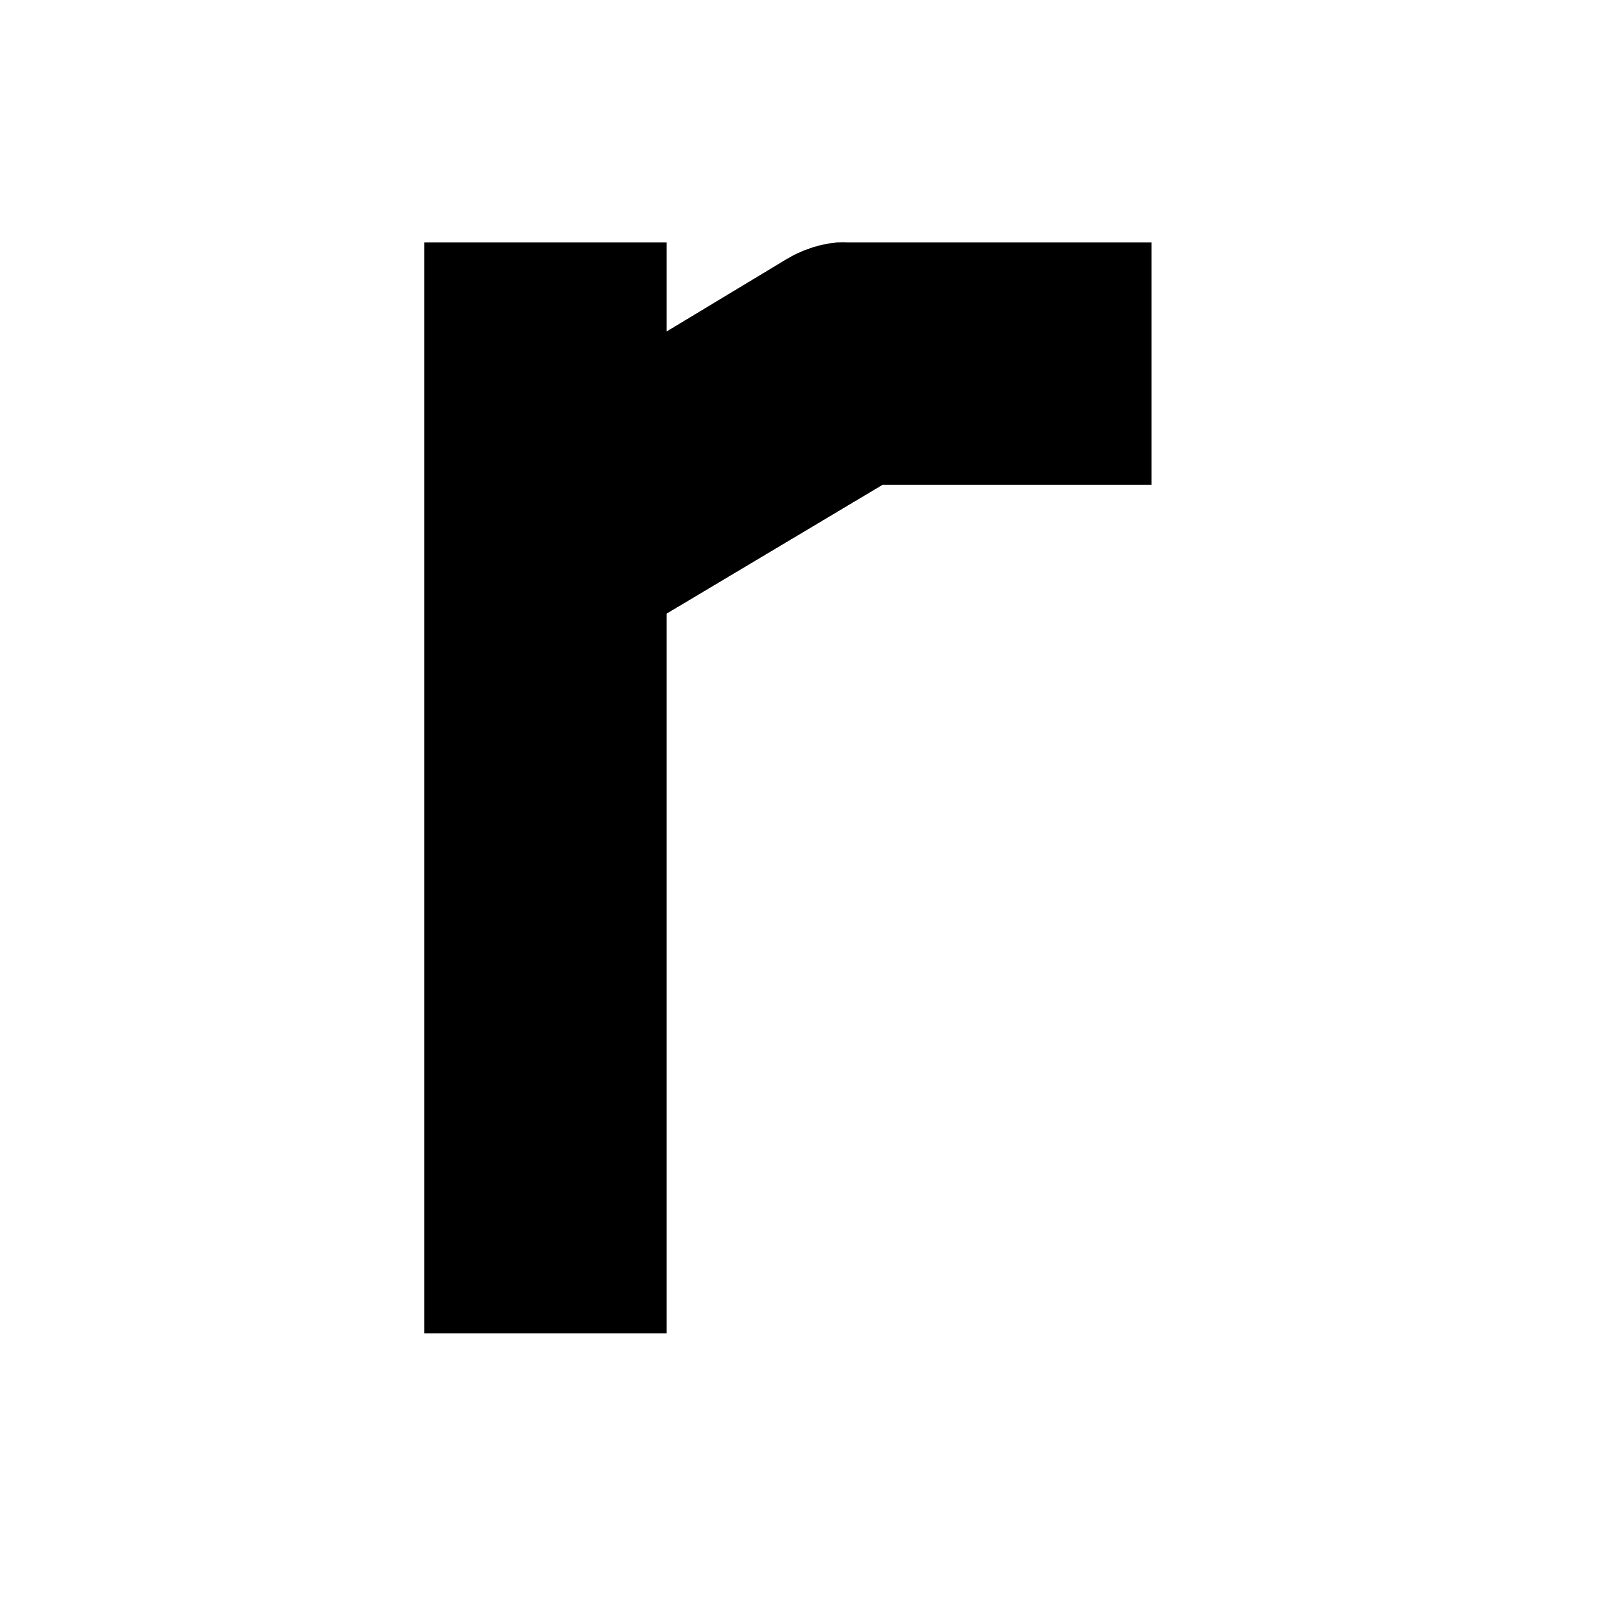 White rated r png. Ic ne letter t